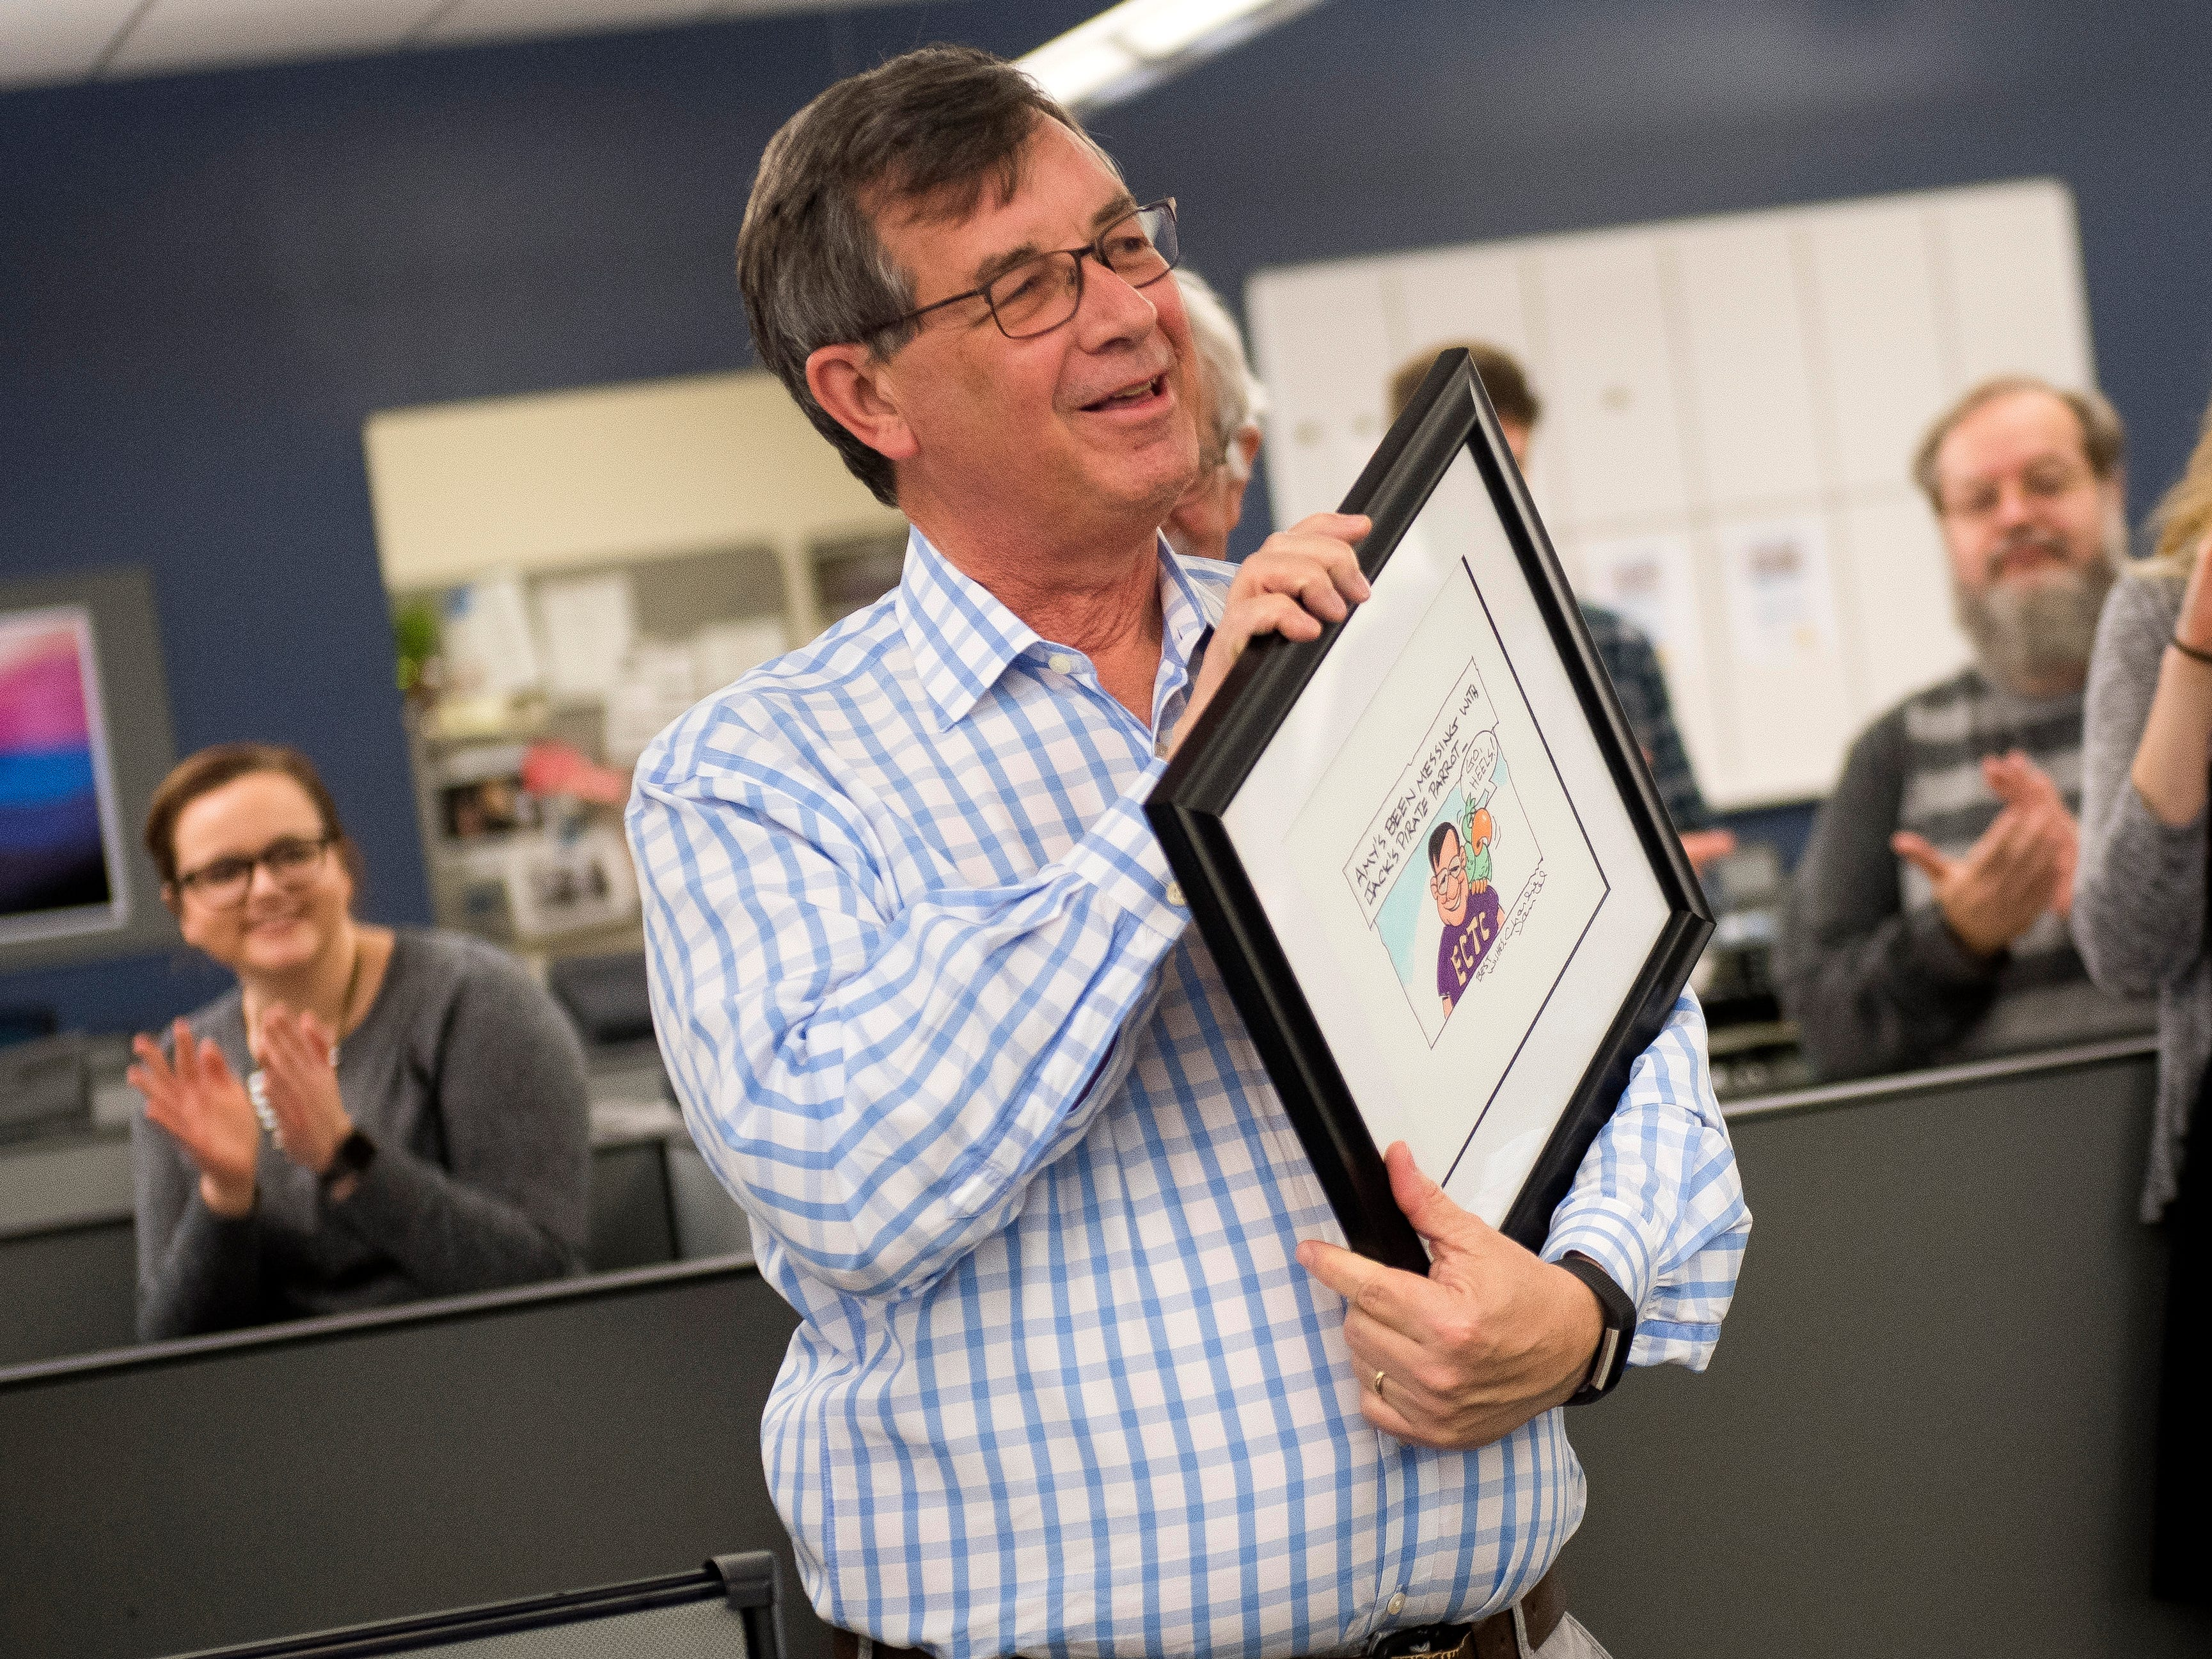 Consumer Experience Director Jack Lail reacts to his custom Charlie Daniel cartoon during a retirement party on Wednesday, January 2, 2019. The Knoxville News Sentinel celebrated the retirements of Mary Constantine, Jack Lail and Michael Patrick.